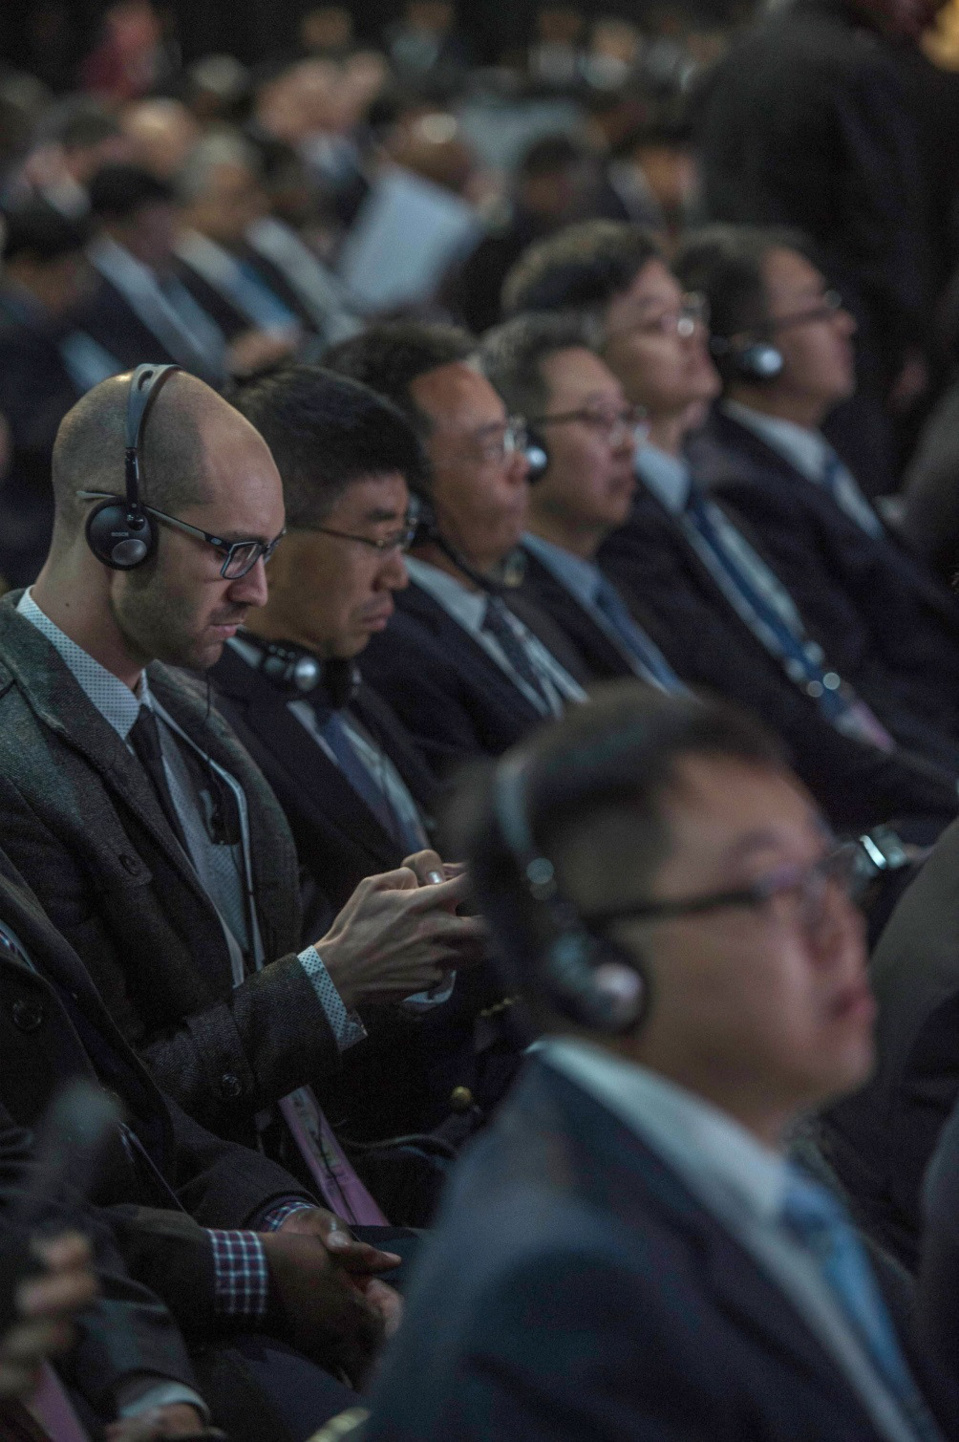 BRICS delegates listen to South African Trade and Industry Minister on the first day of the 10th BRICS summit at Sandton Convention Center, in Sandton district of Johannesburg on July 25, 2018. (Photo: VCG)